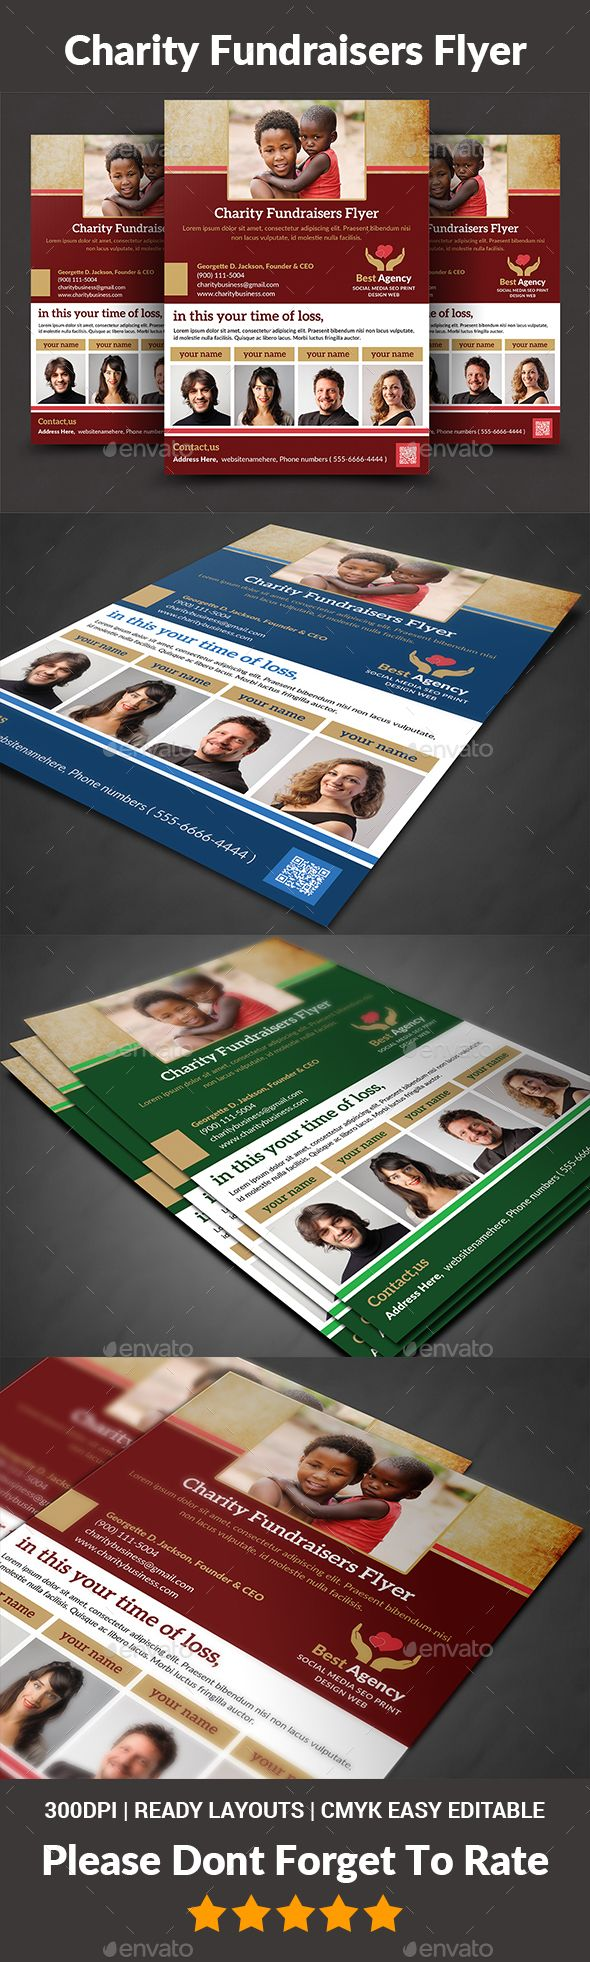 Charity Flyer Templates  is a professional, clean, & creative Flyer template designed to make a good impression.  ................................................  Features :  - A4 size  - Editable in adobe photoshop  - Professional & clean design  - Uses free